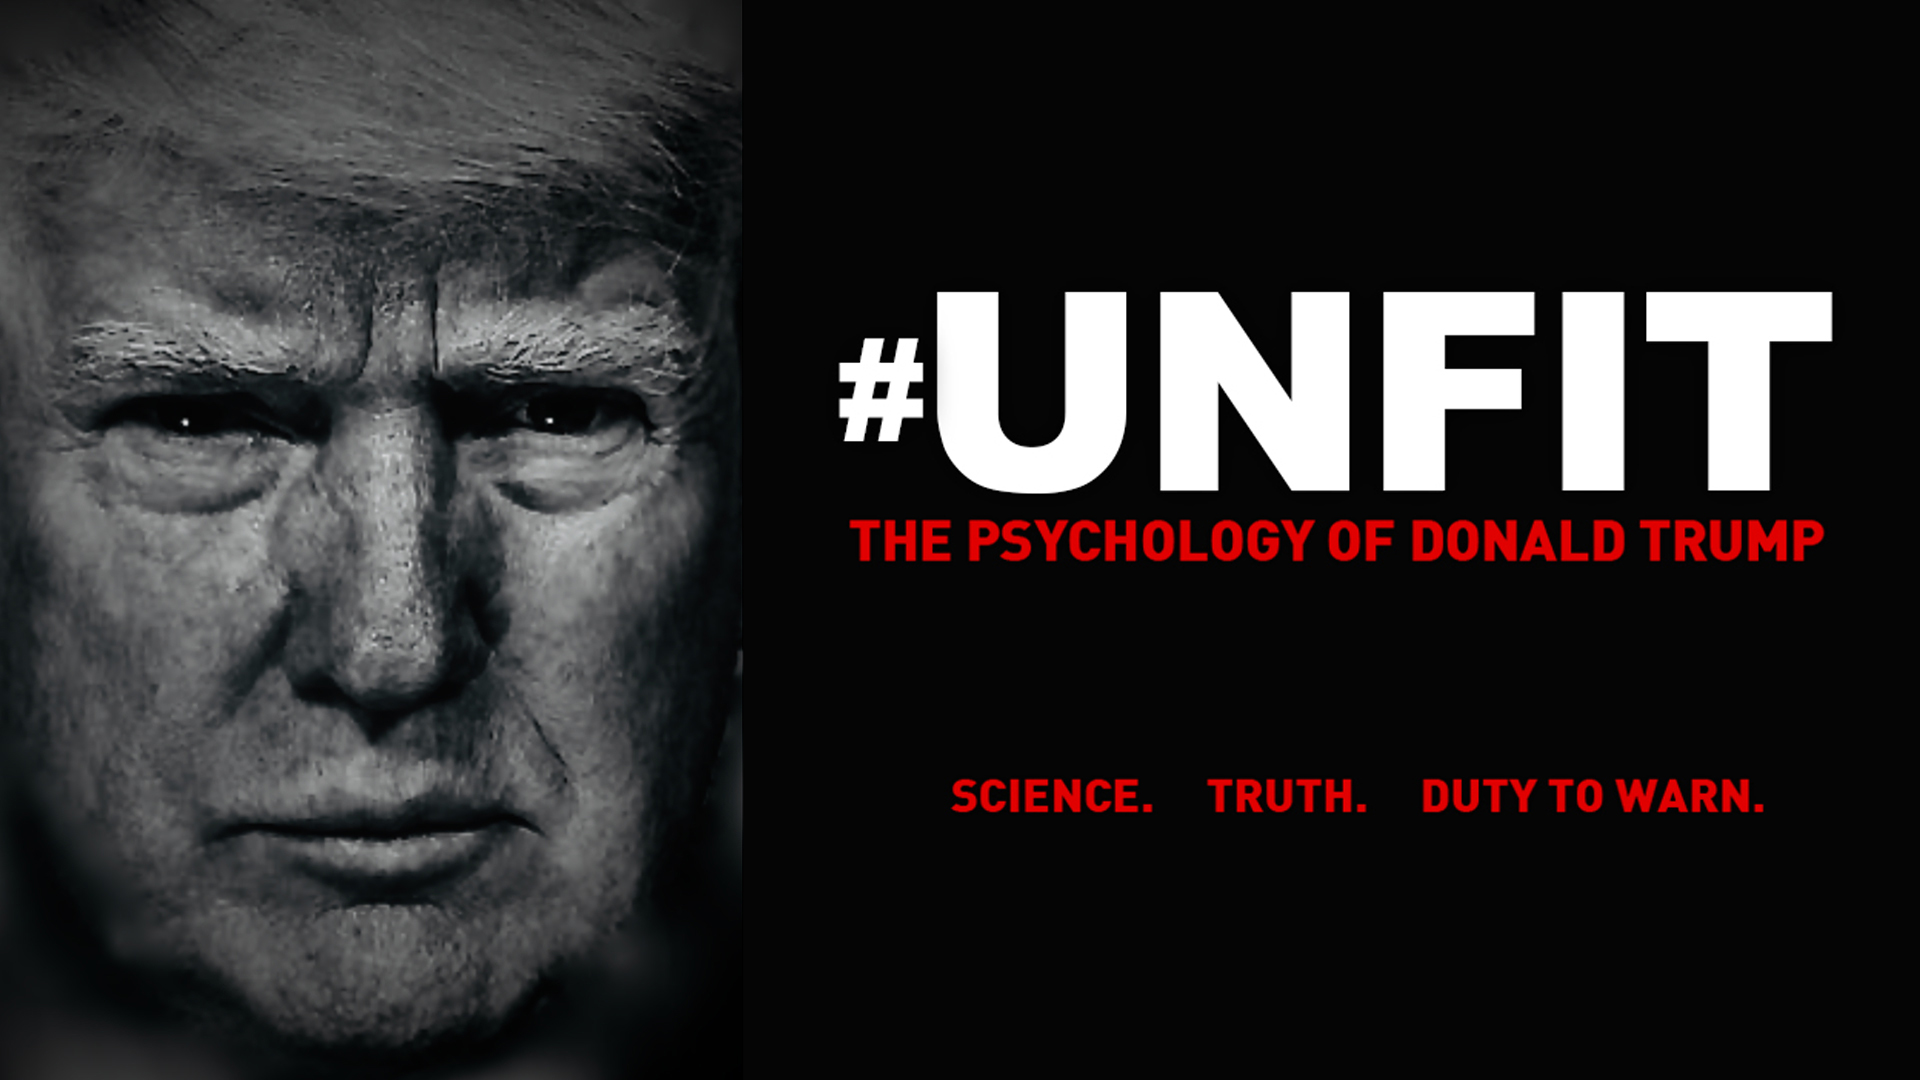 #Unfit: The Psychology of Donald Trump